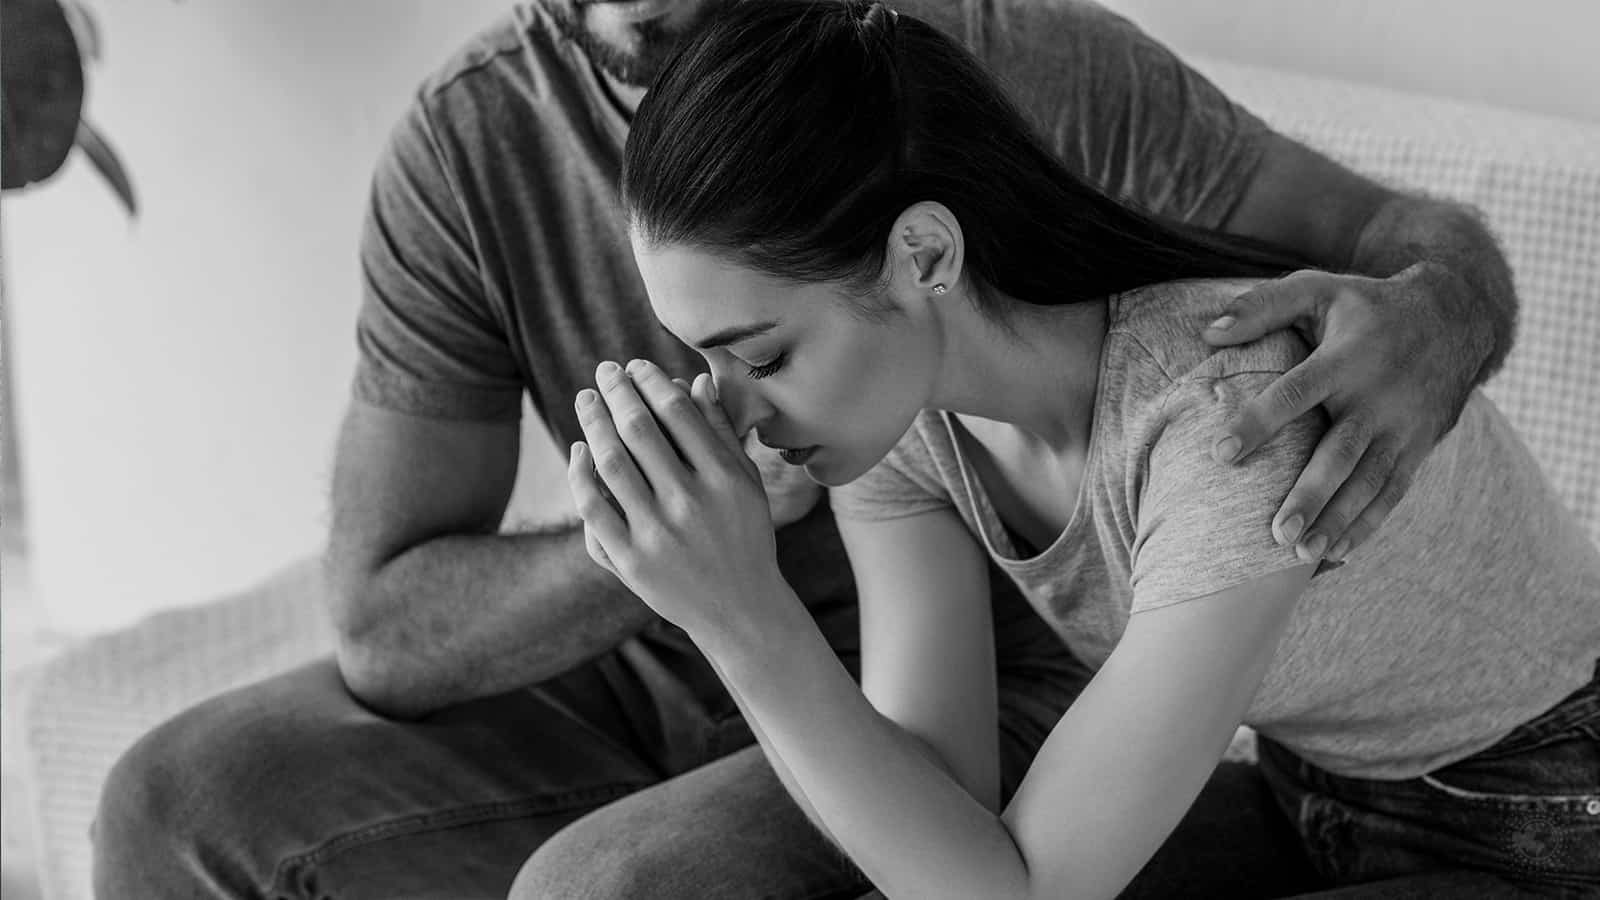 Therapists Explain 6 Ways To Calm A Stressed Partner